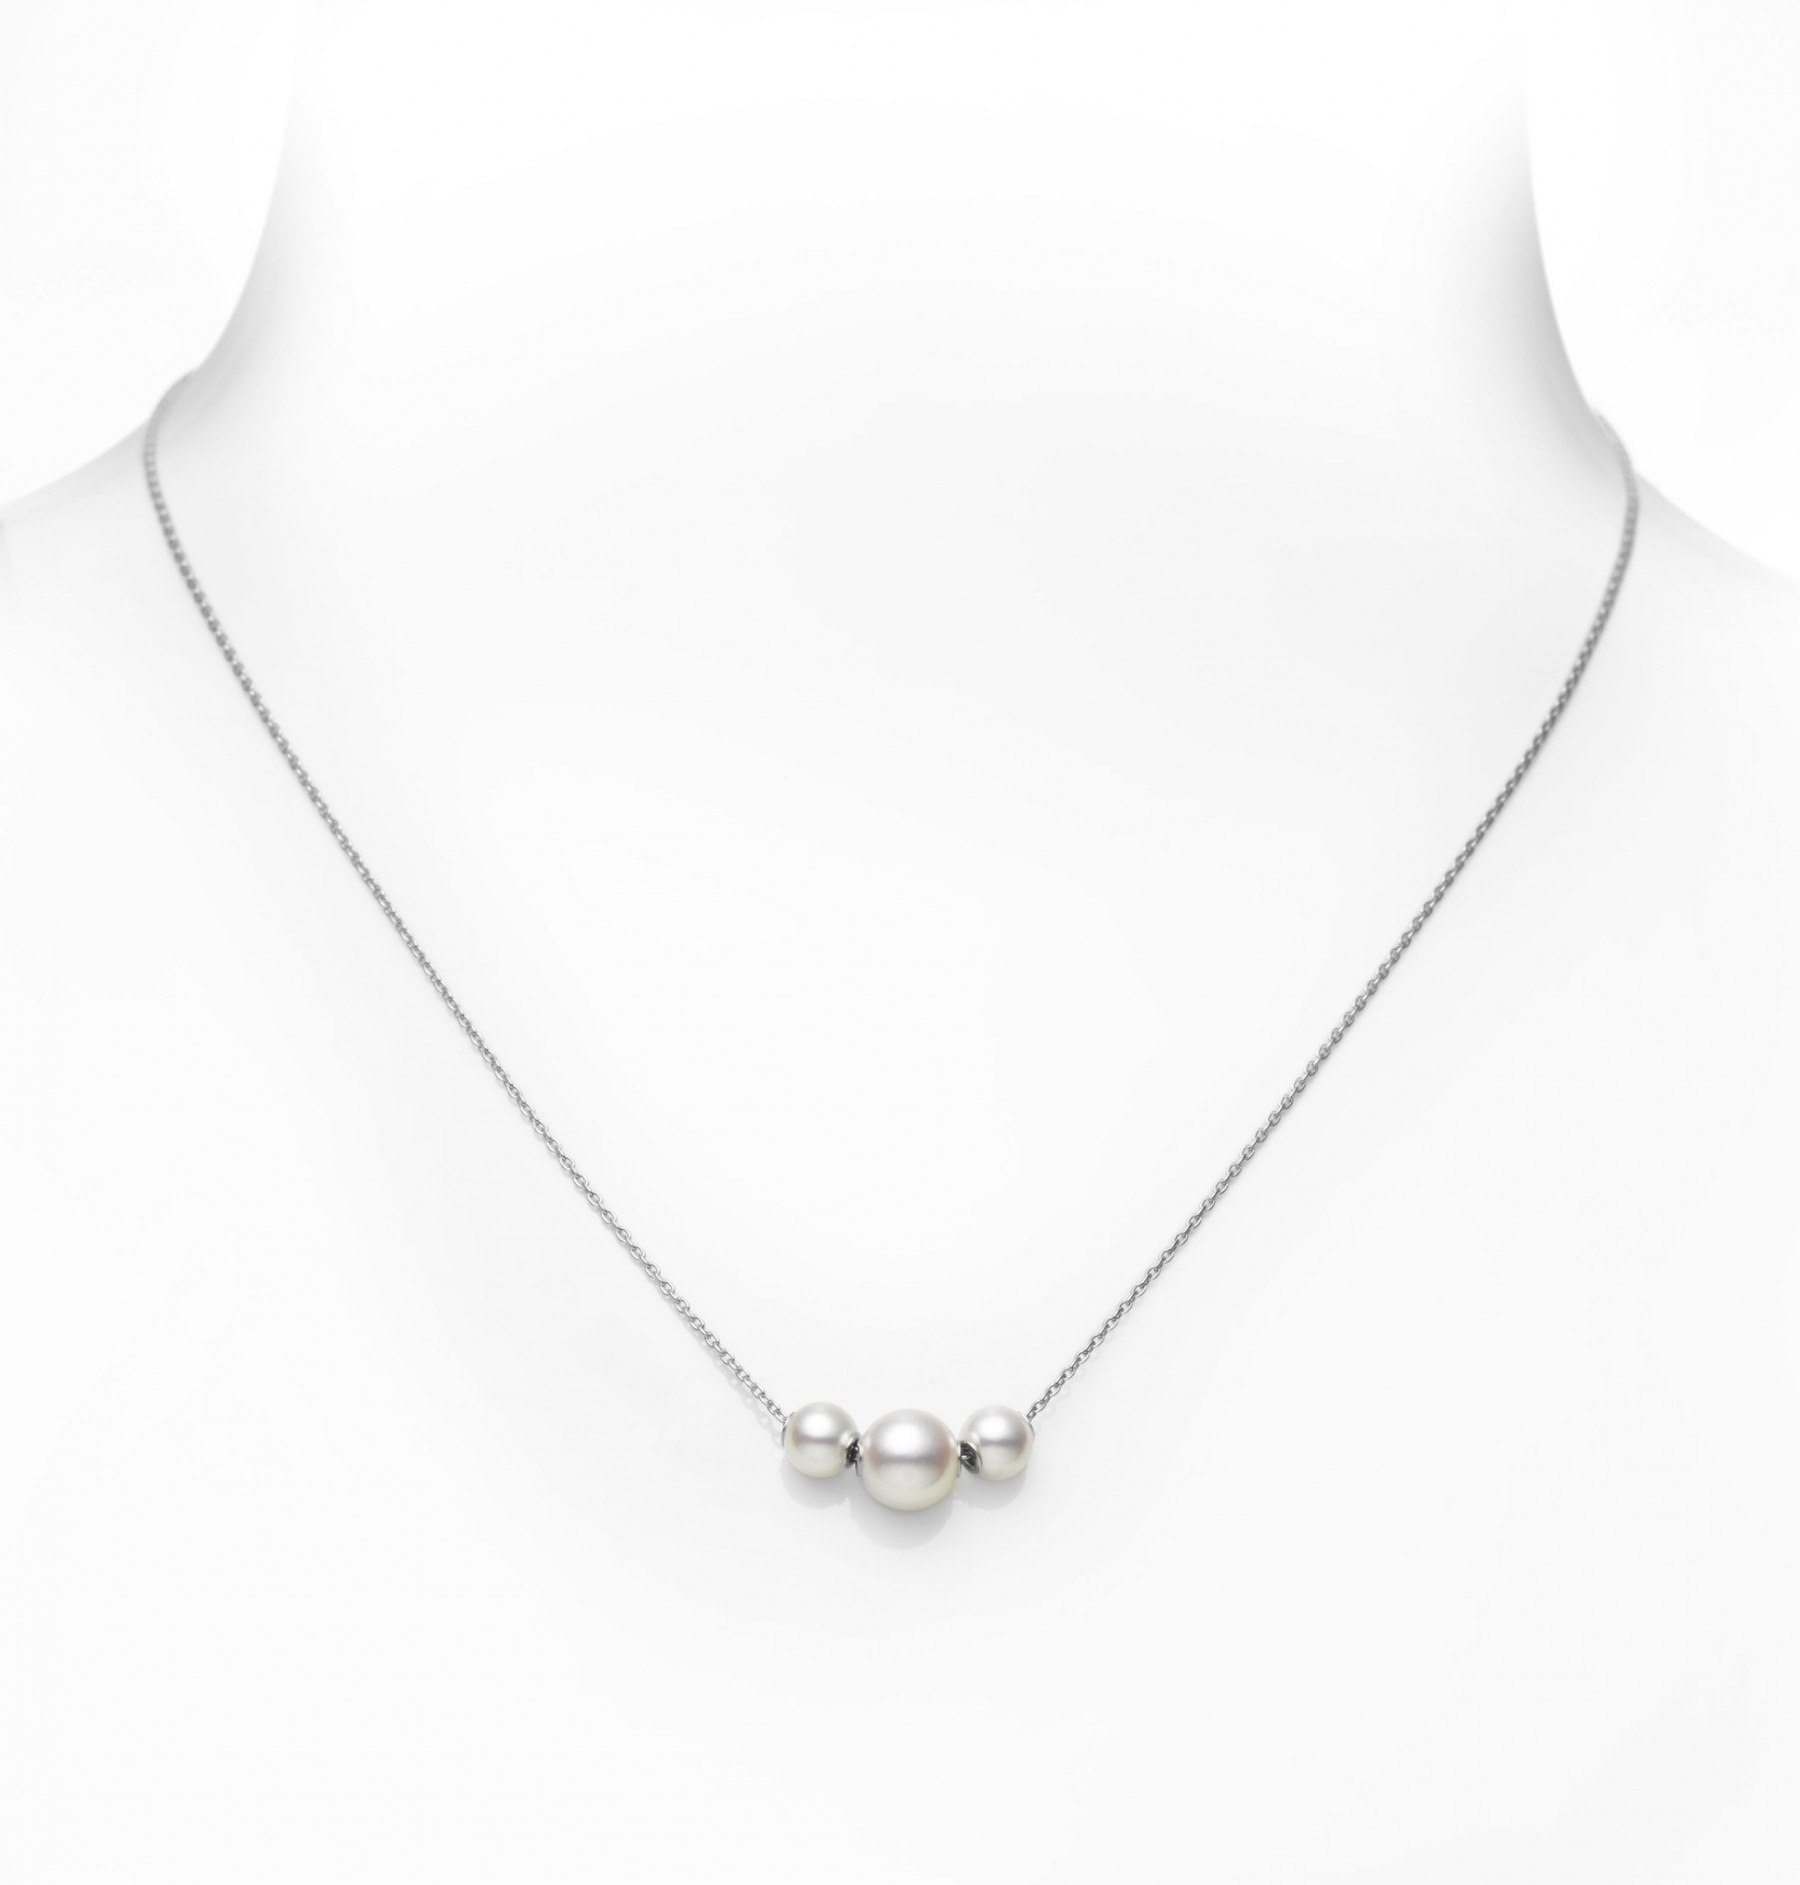 Mikimoto 18kt White Gold Three Pearl Station Necklace